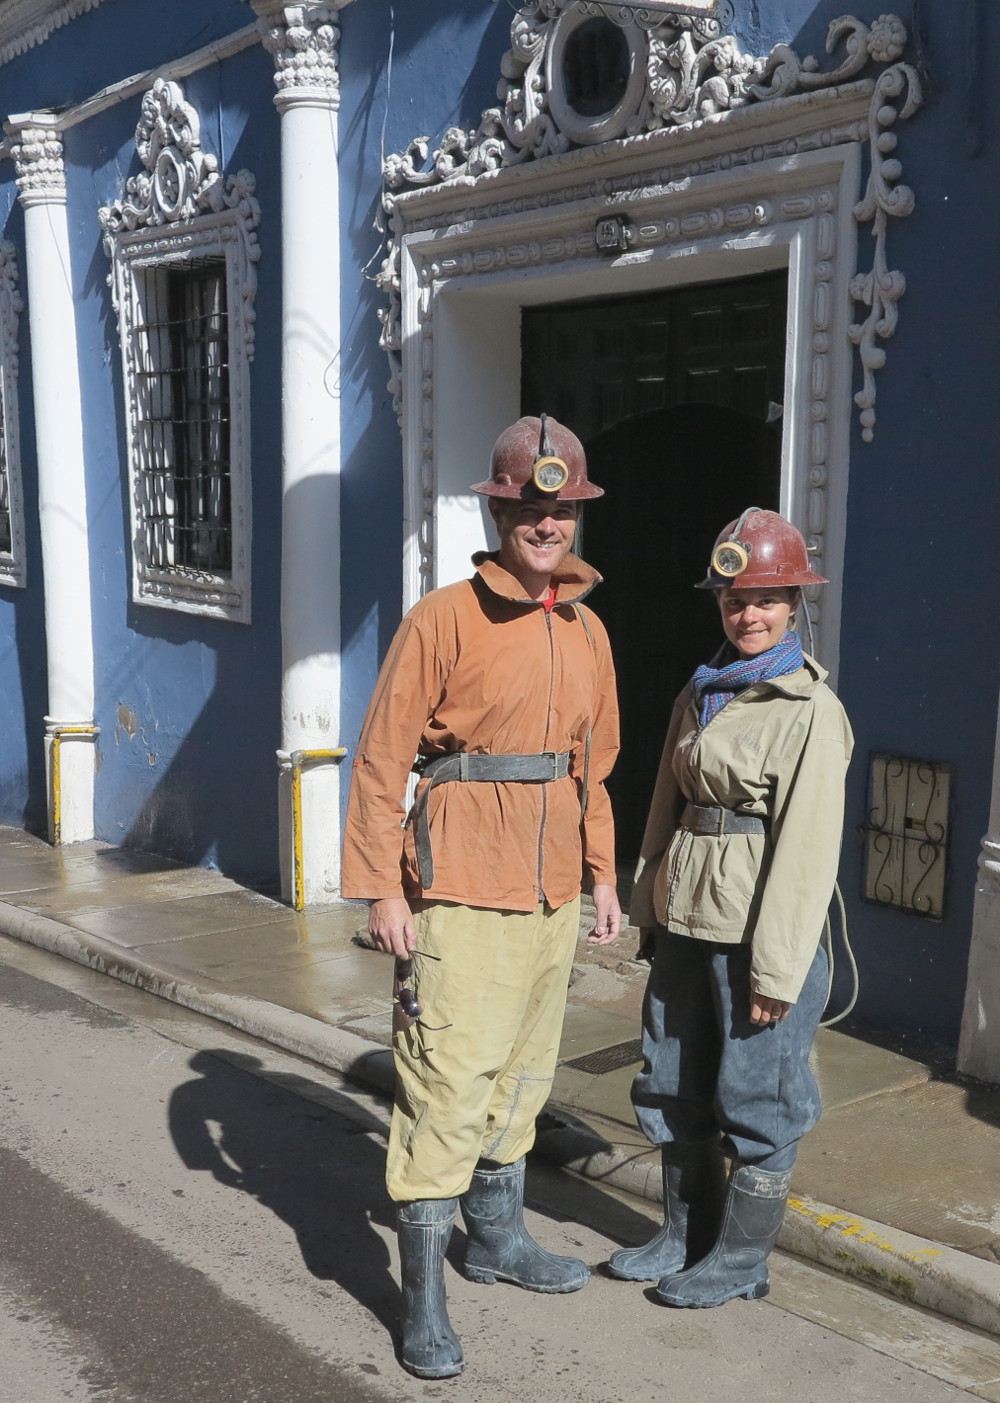 Carmen and Dave mining gear Potosi mines Double-Barrelled Travel